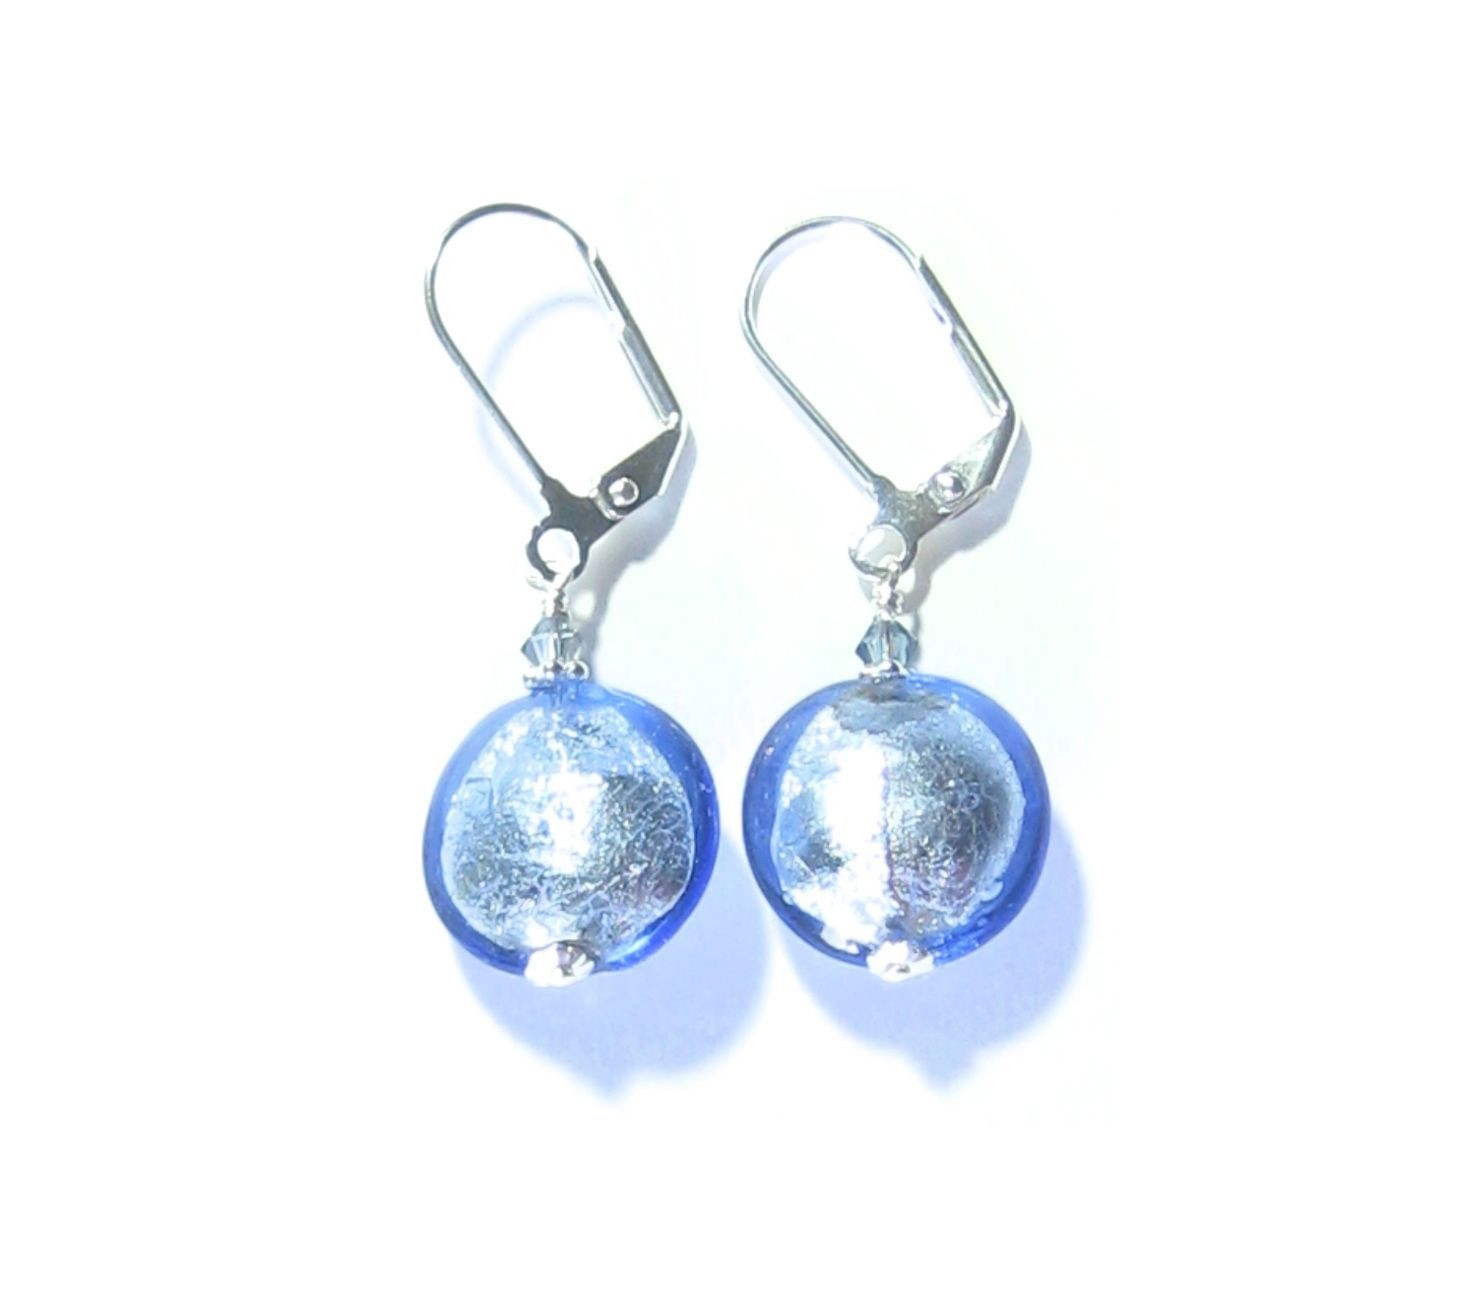 murano blue vase of murano glass blue disc sterling silver earrings products pertaining to murano glass blue disc sterling silver earrings